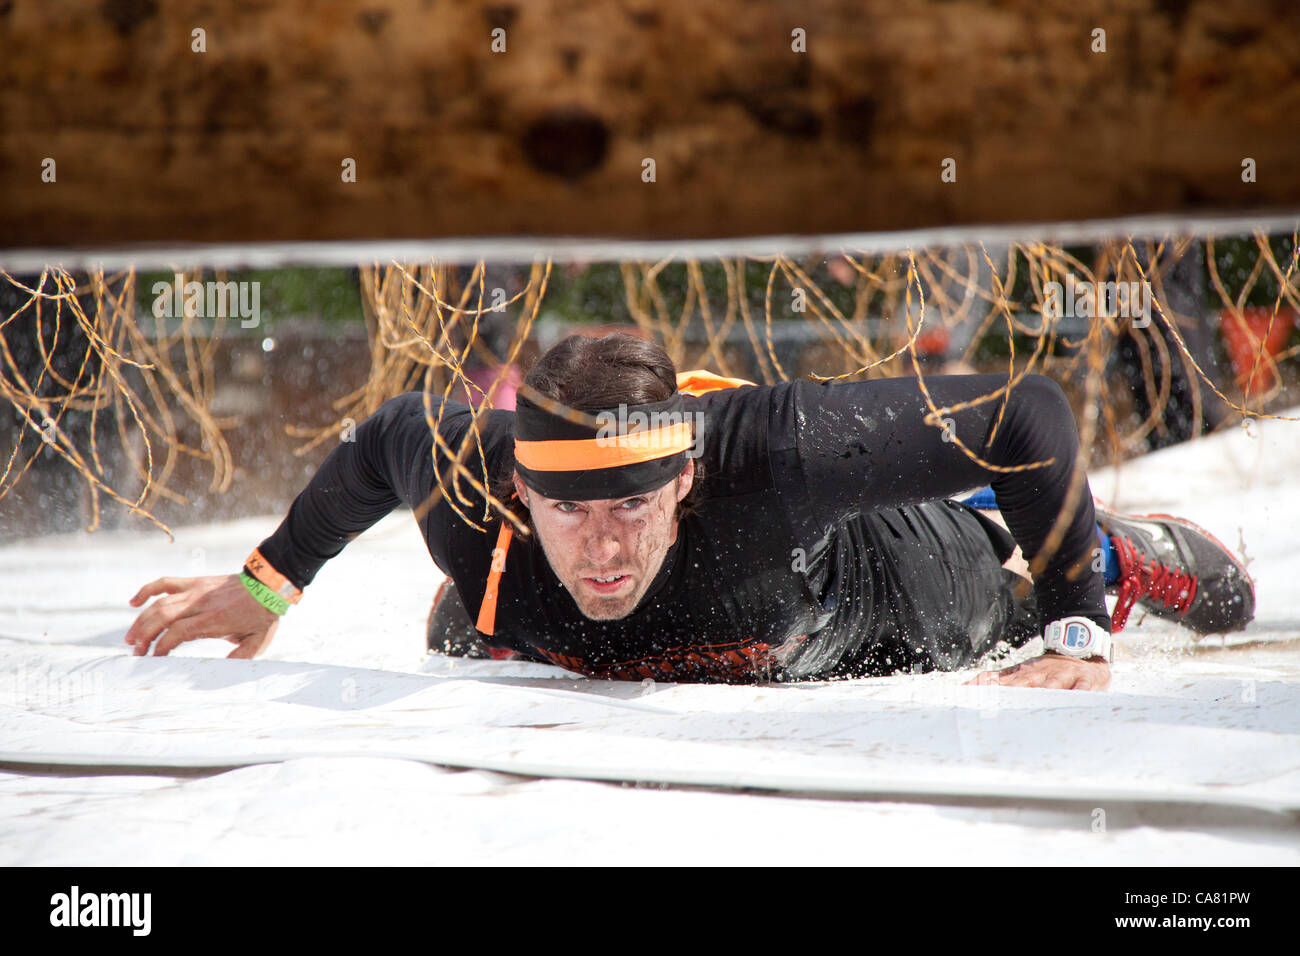 June 23, 2012. Participants compete in the Tough Mudder event, known as the premier obstacle course series in the - Stock Image